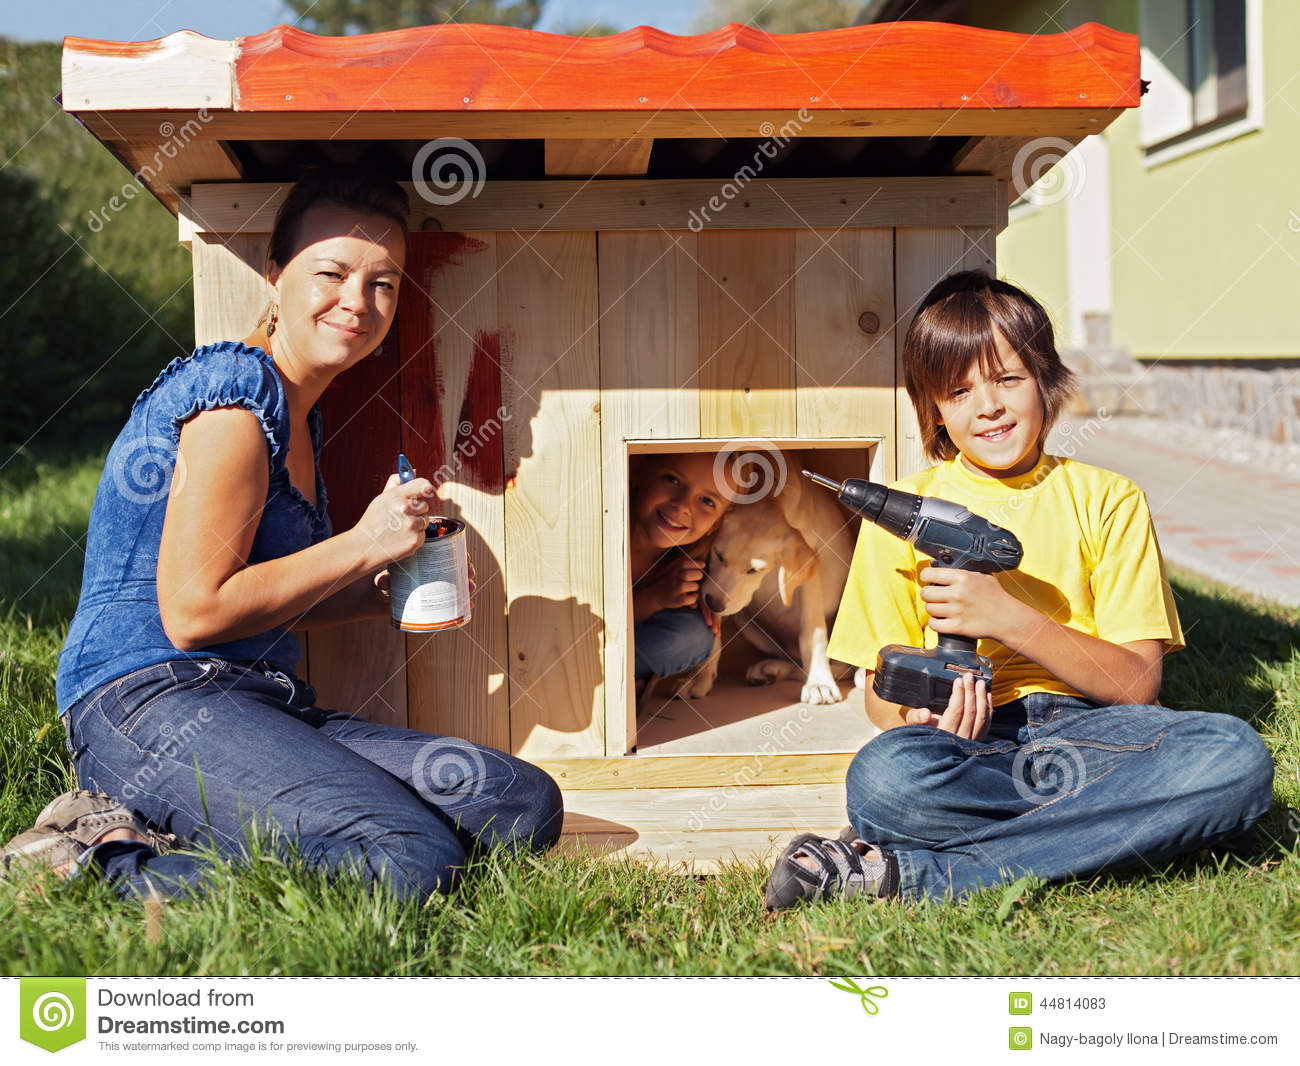 Download Happy Family Time - Making A Shelter For Our Puppy Dog Stock Image - Image of painting, doghouse: 44814083